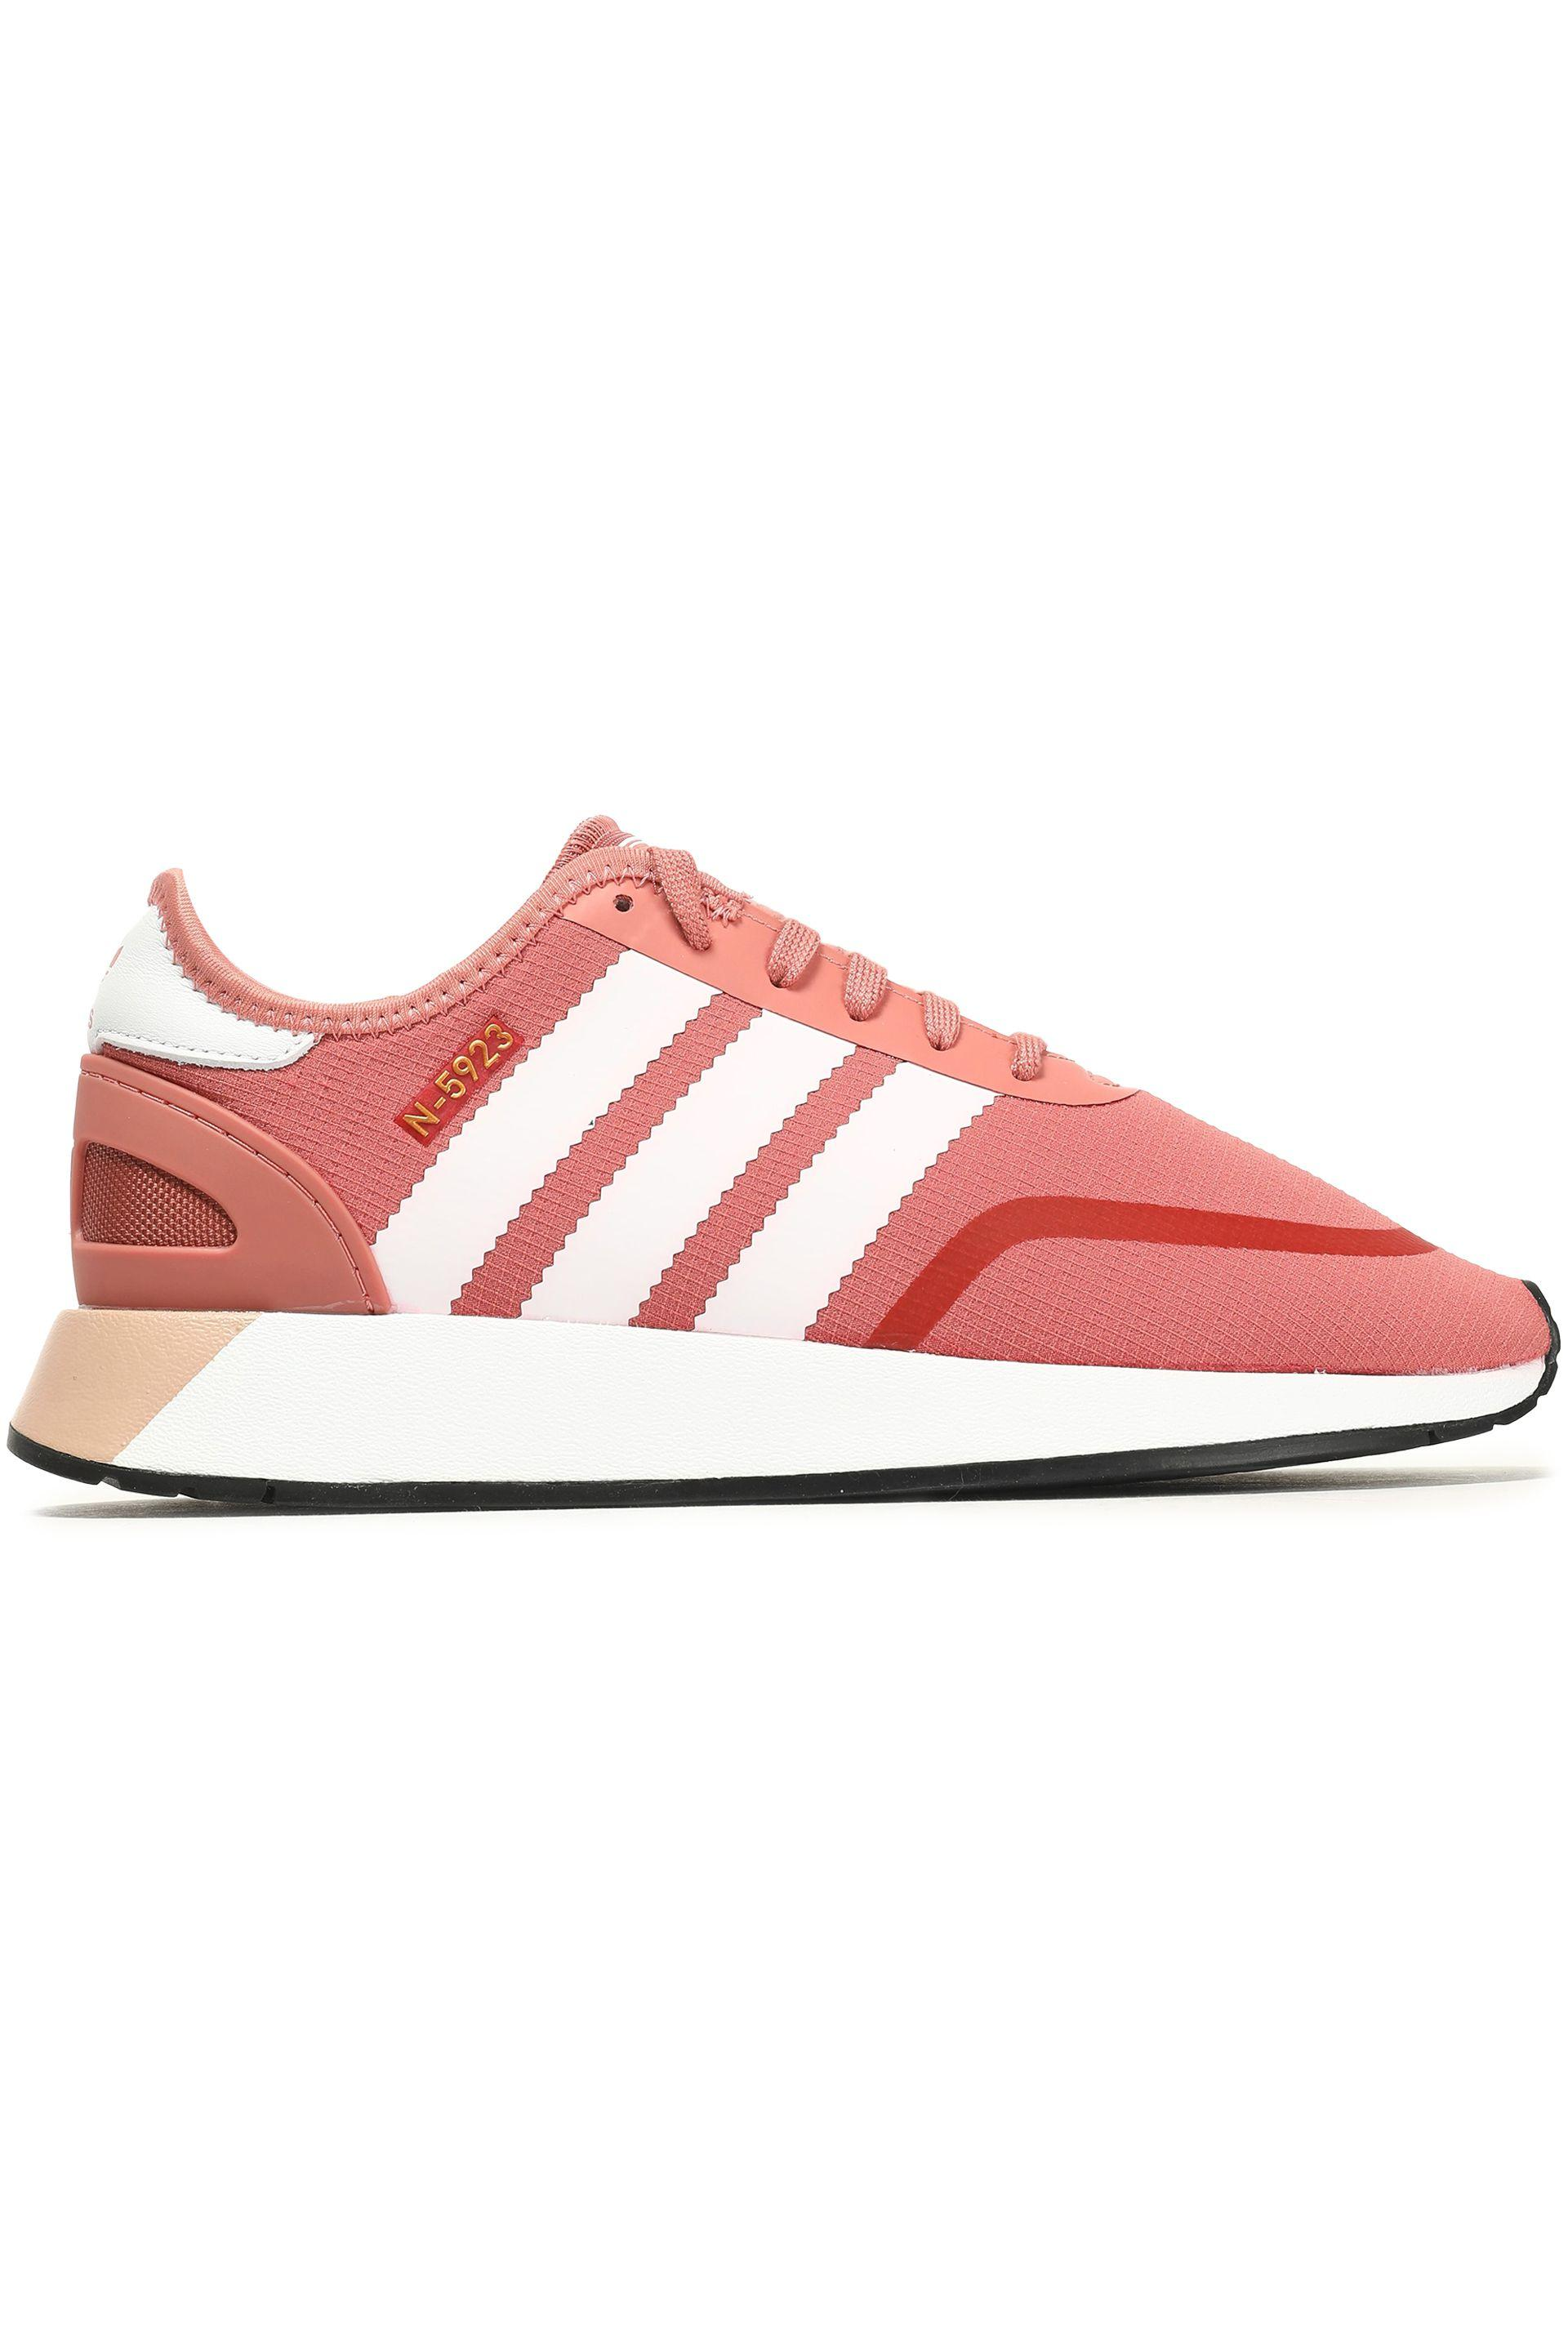 adidas Originals Rubber N 5923 Stretch knit Sneakers Antique